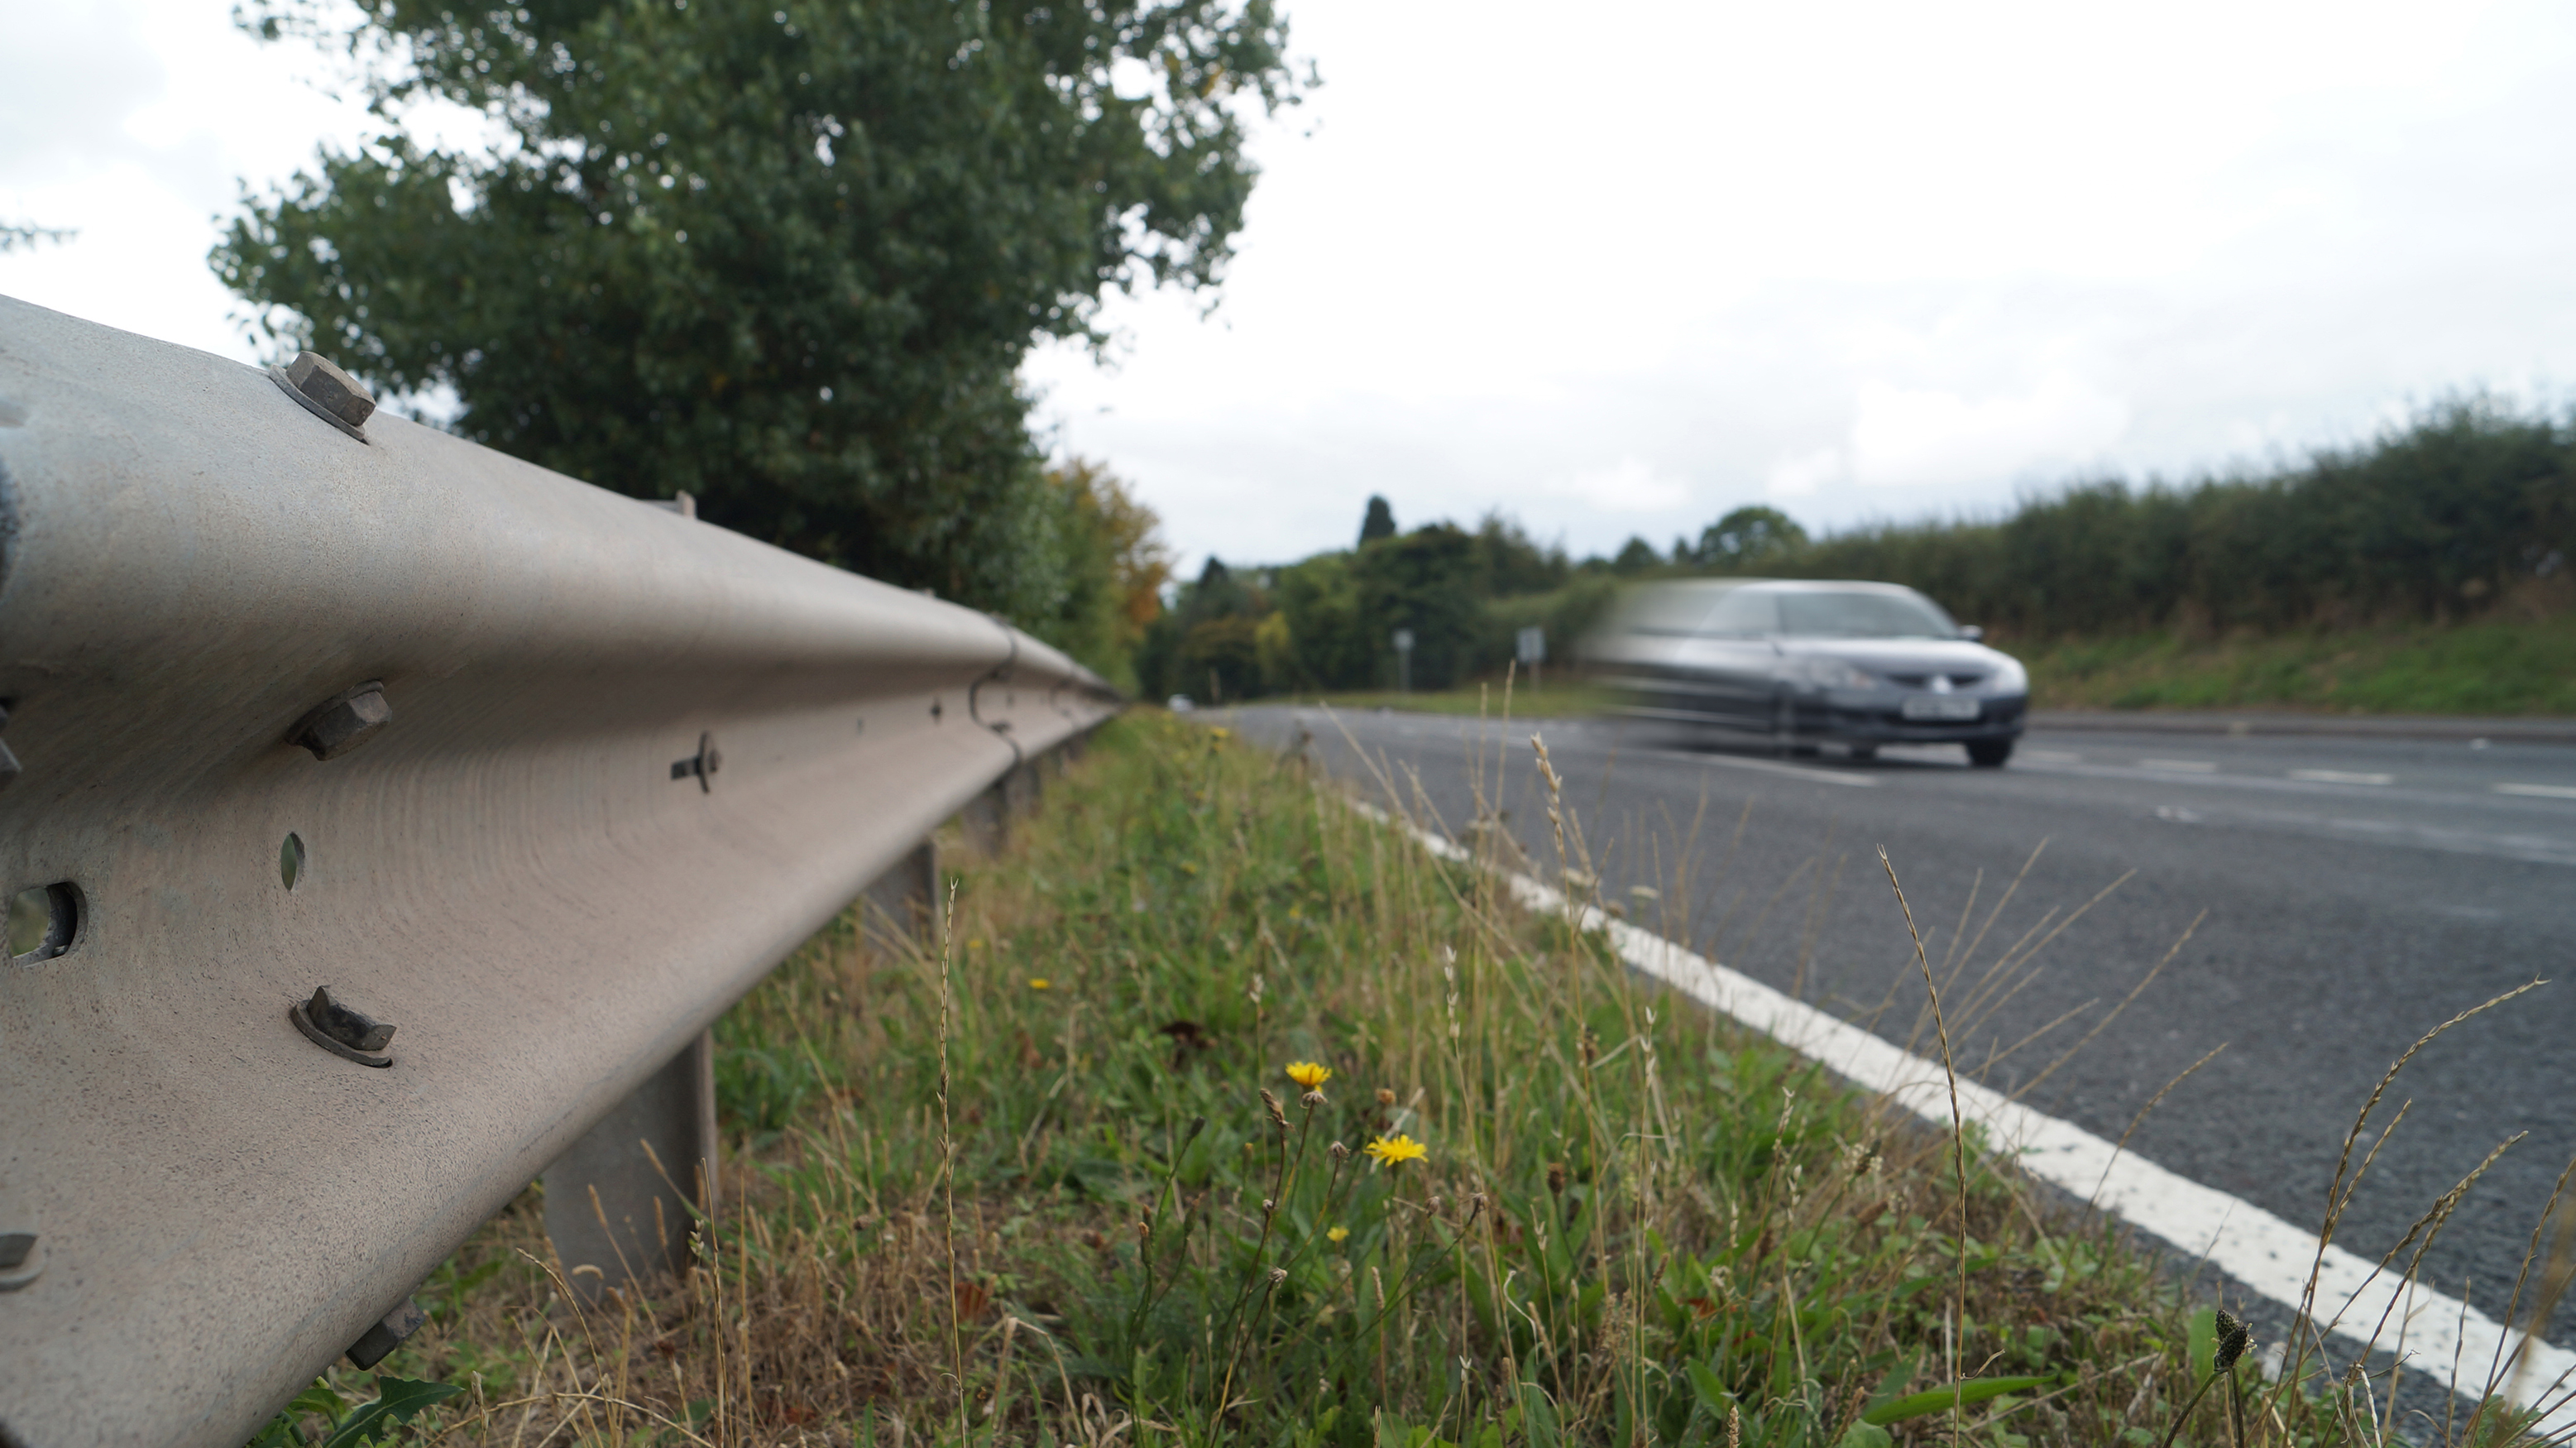 Curved Armco from Barnshaws keeps civil projects on the road